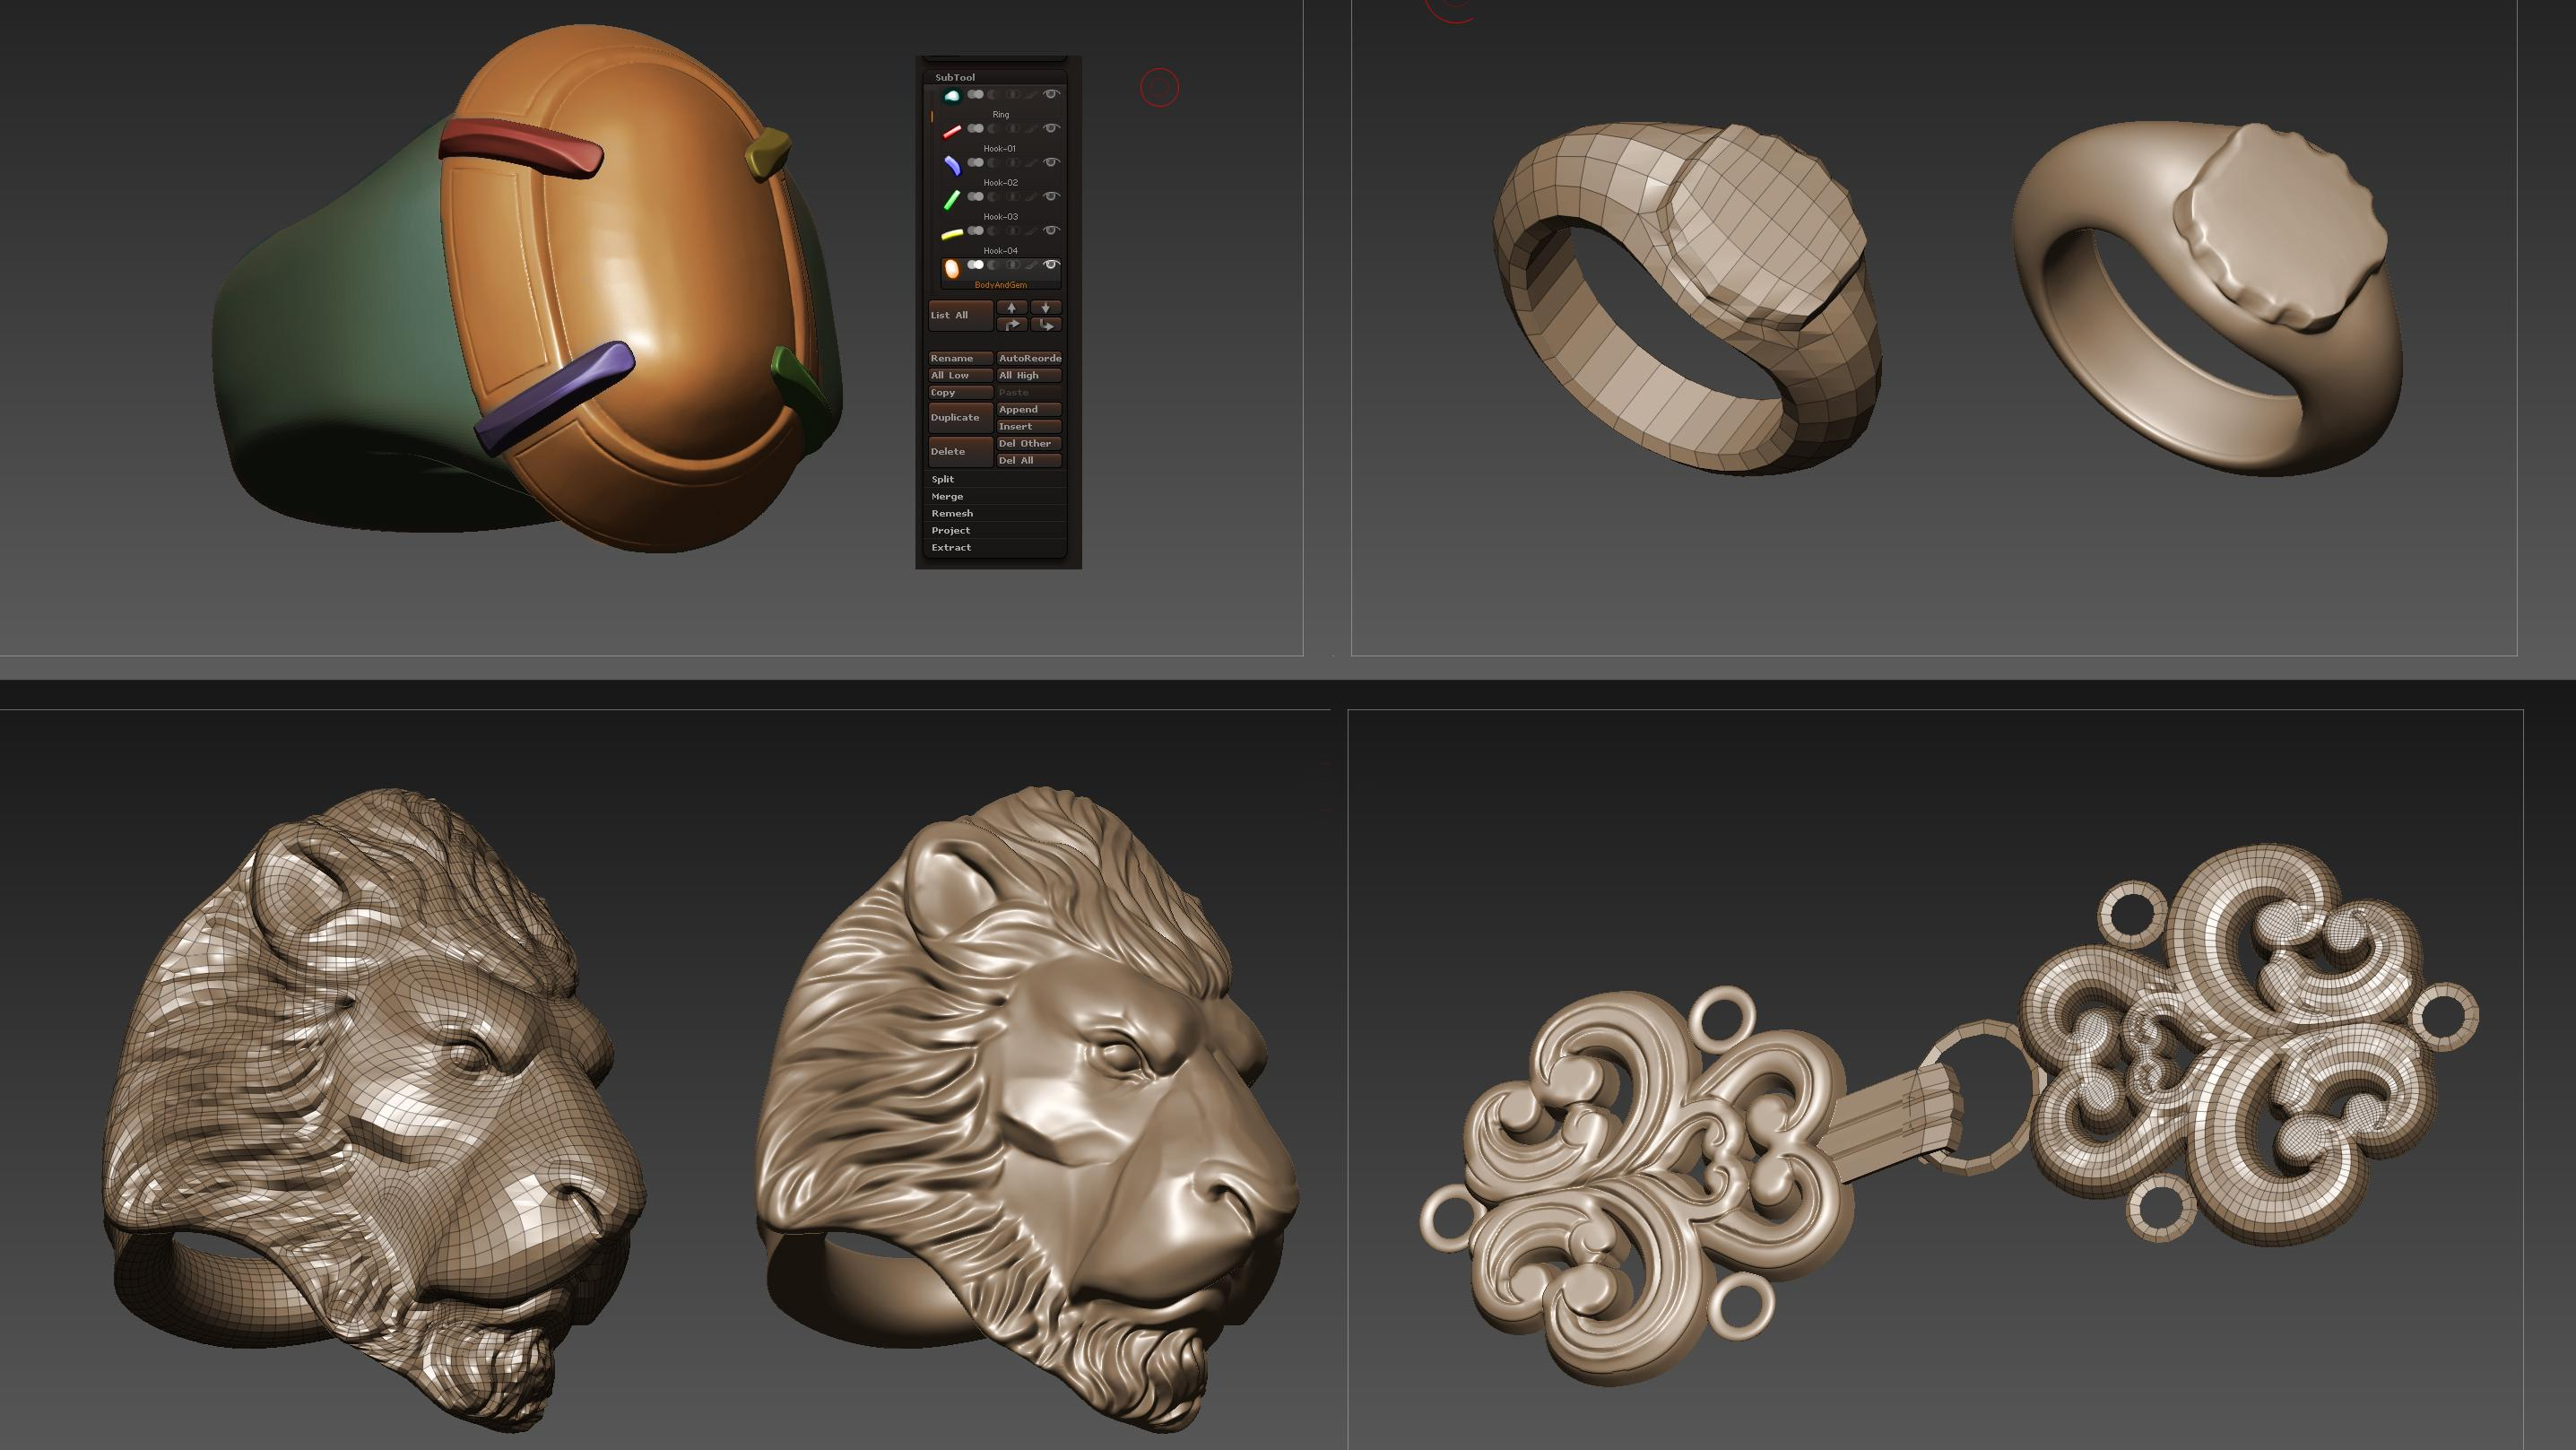 objects in ZBrush including lion's head and ring